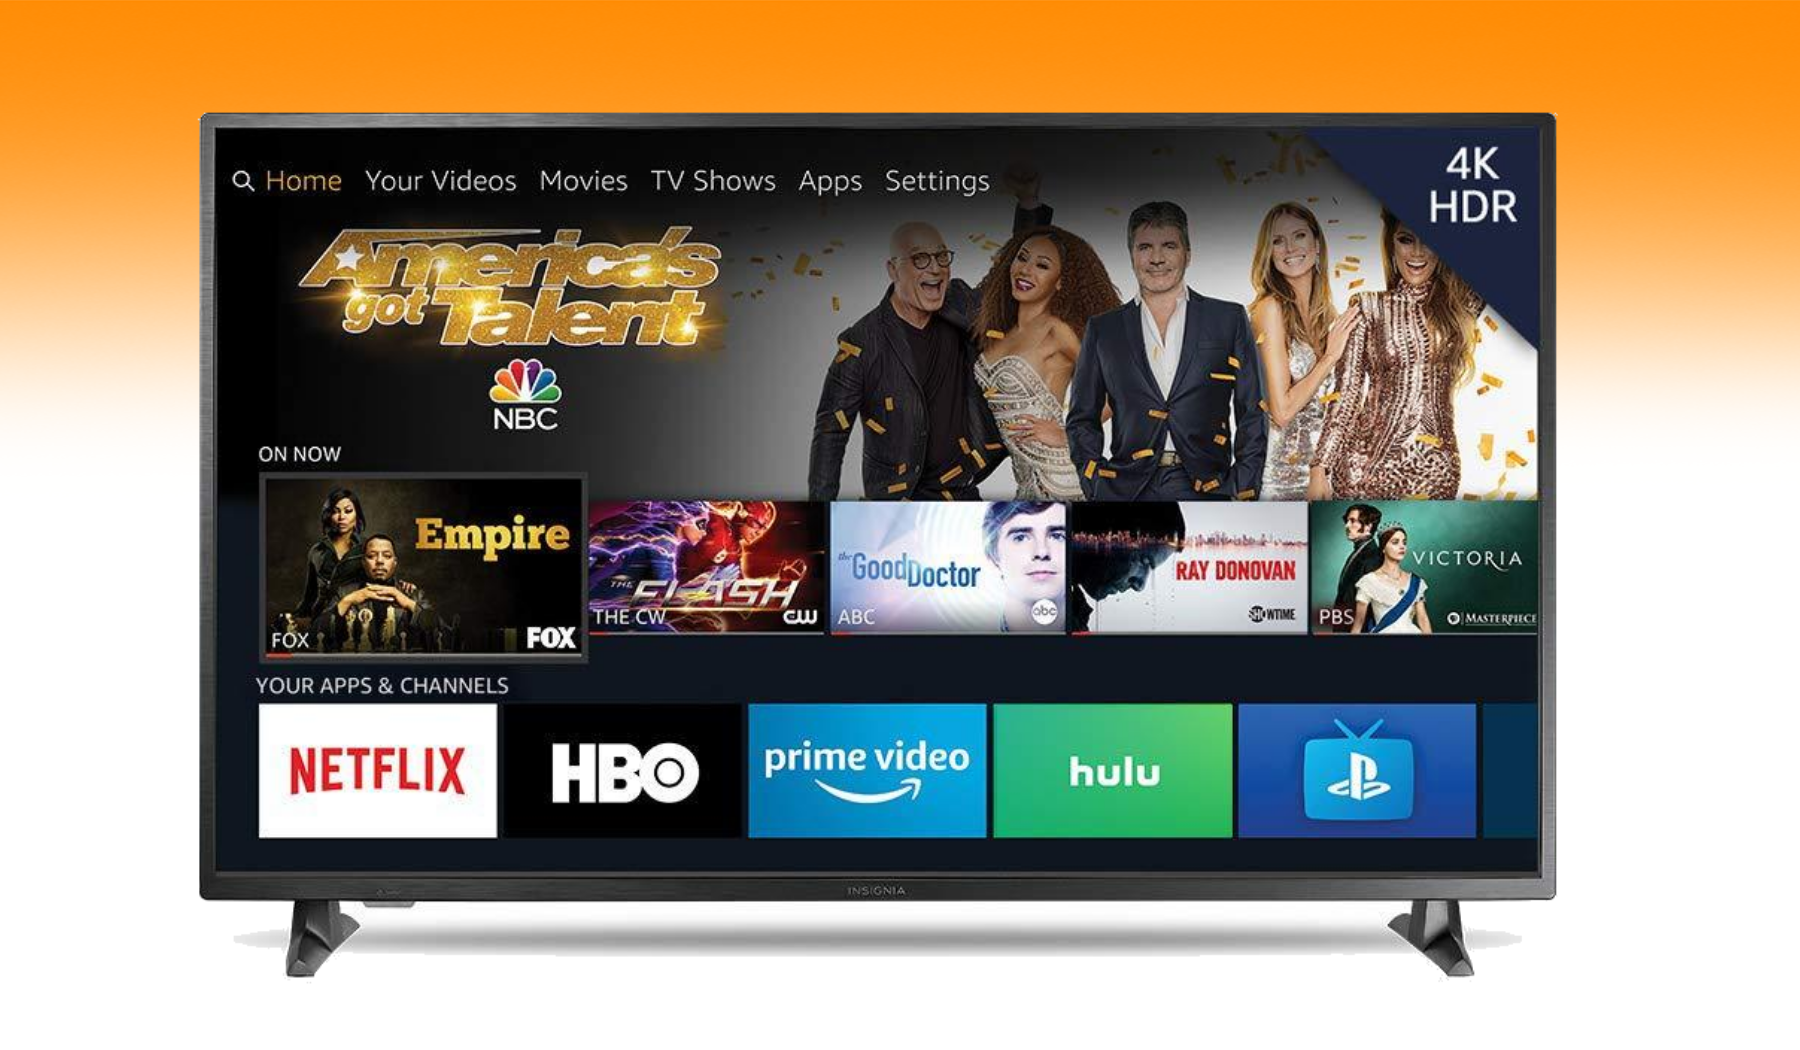 Insignia 55-inch 4K TV with Fire TV is on sale for $299.99 at Amazon